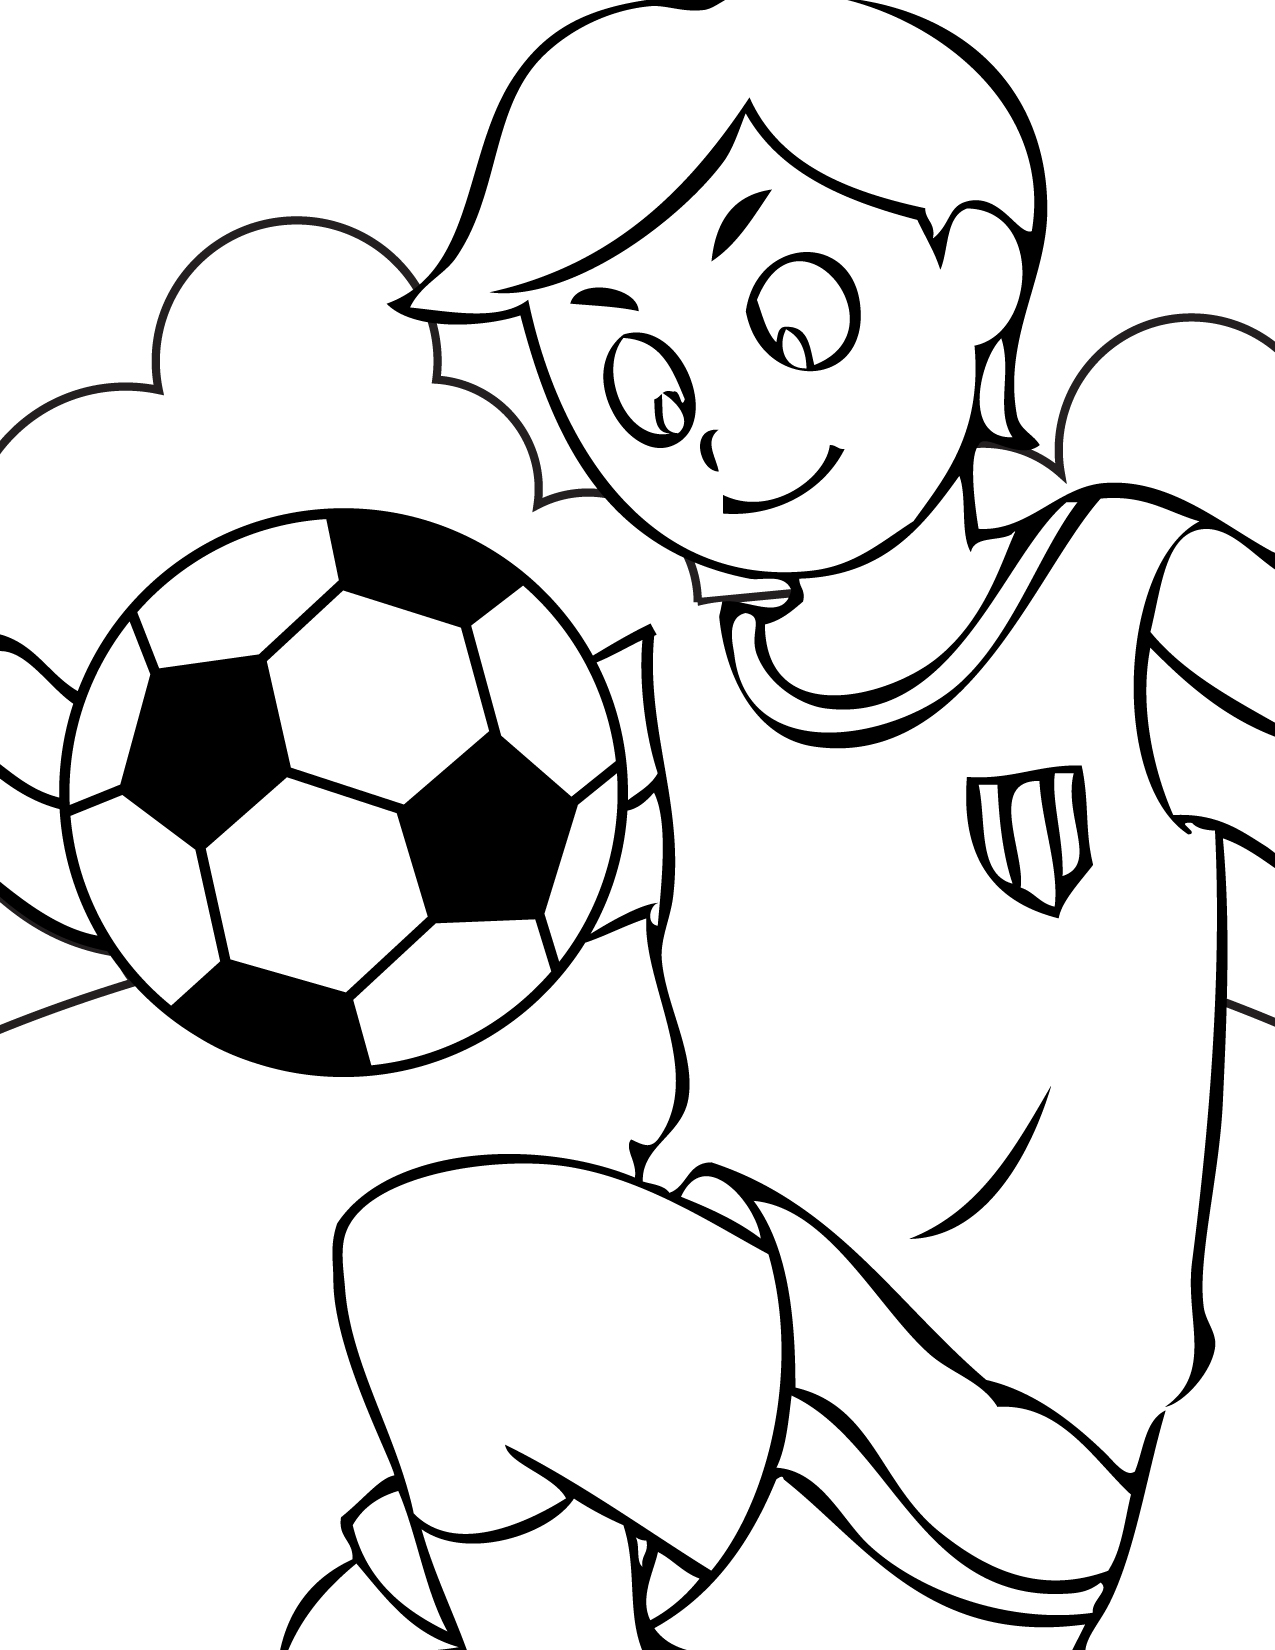 sports pictures to color awesome golfer sports sbd9a coloring pages printable color pictures sports to